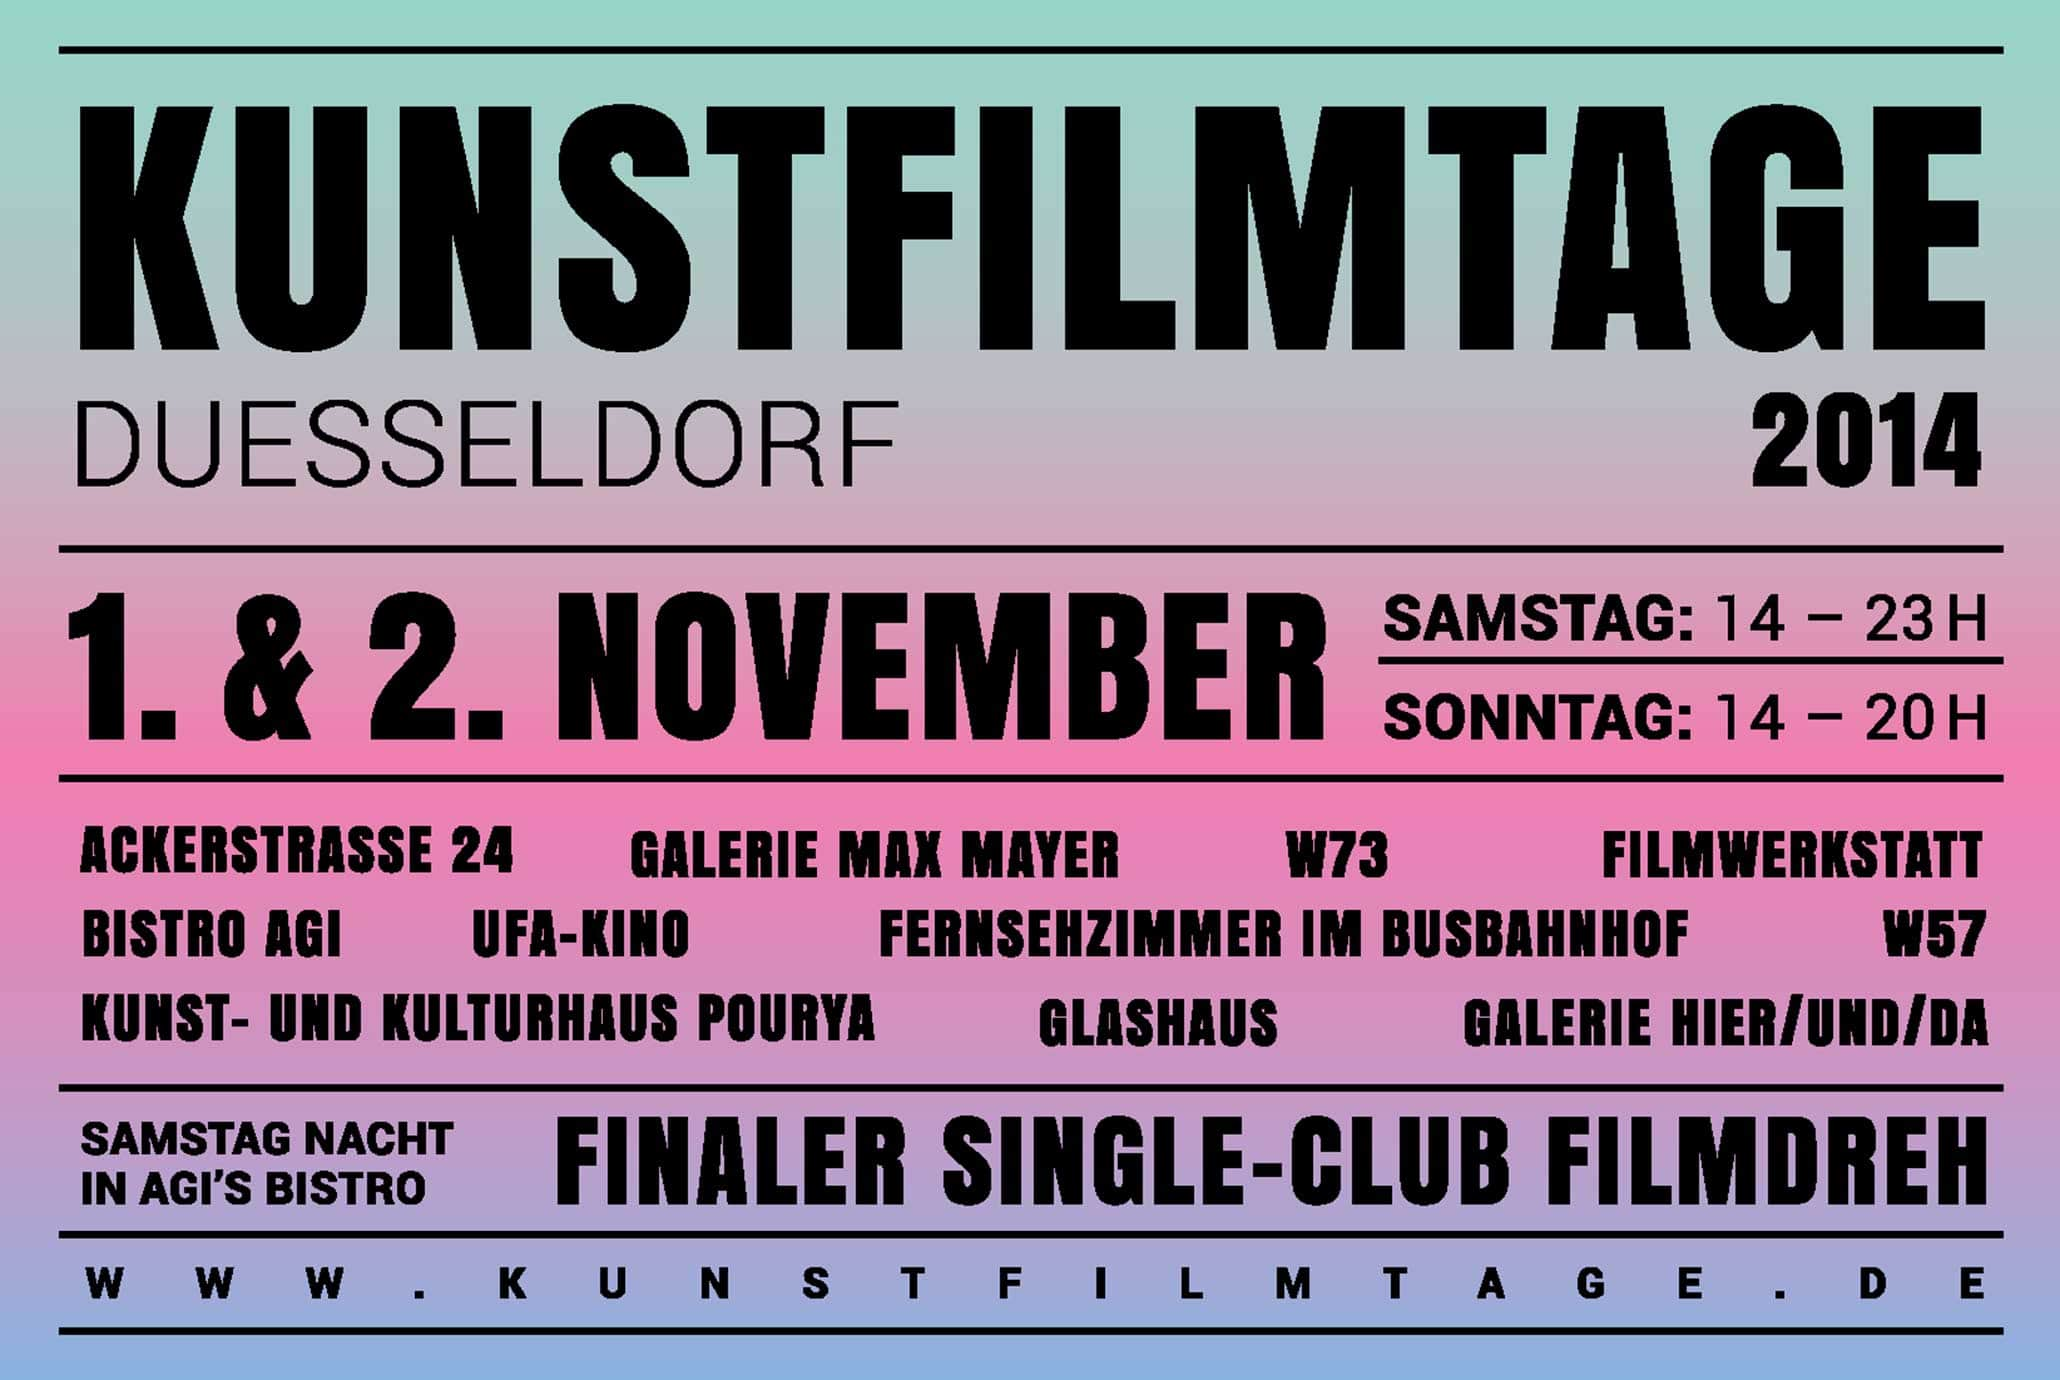 Kunstfilmtage Dusseldorf 2014 - excerpt of the poster